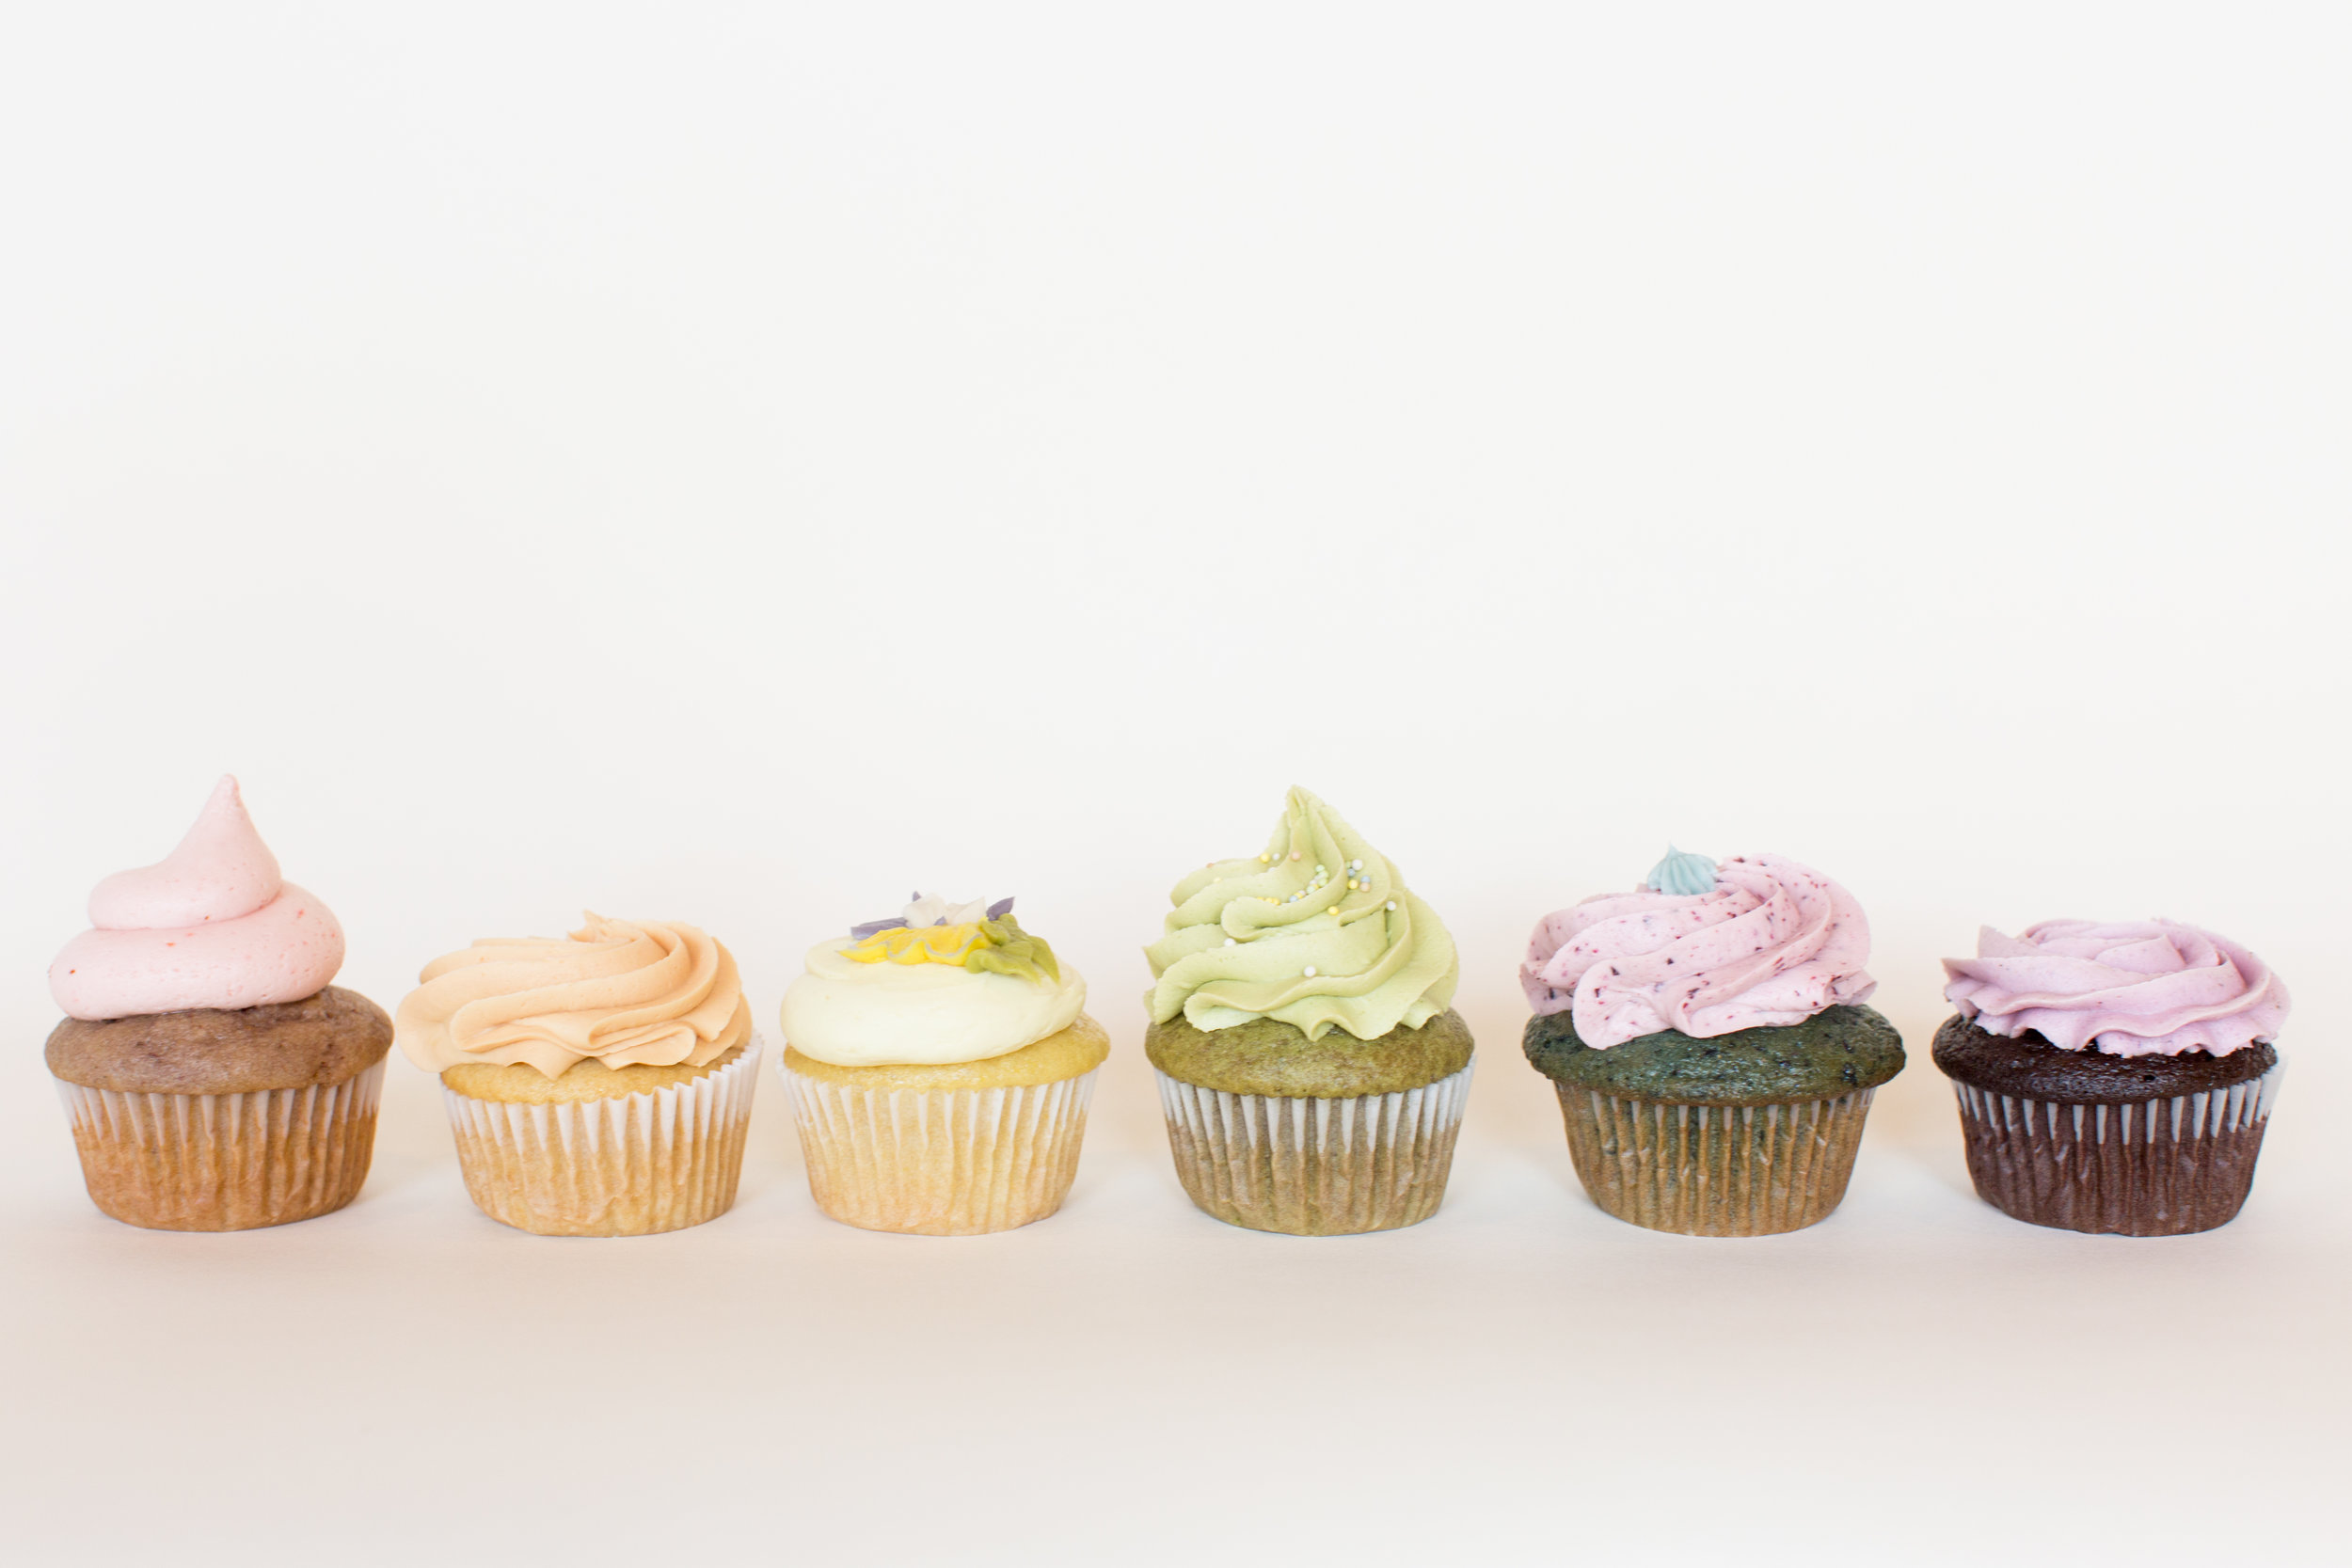 Food photography of vegan cupcakes for Rainbow Bakery, a vegan bakery in Bloomington, Indiana.